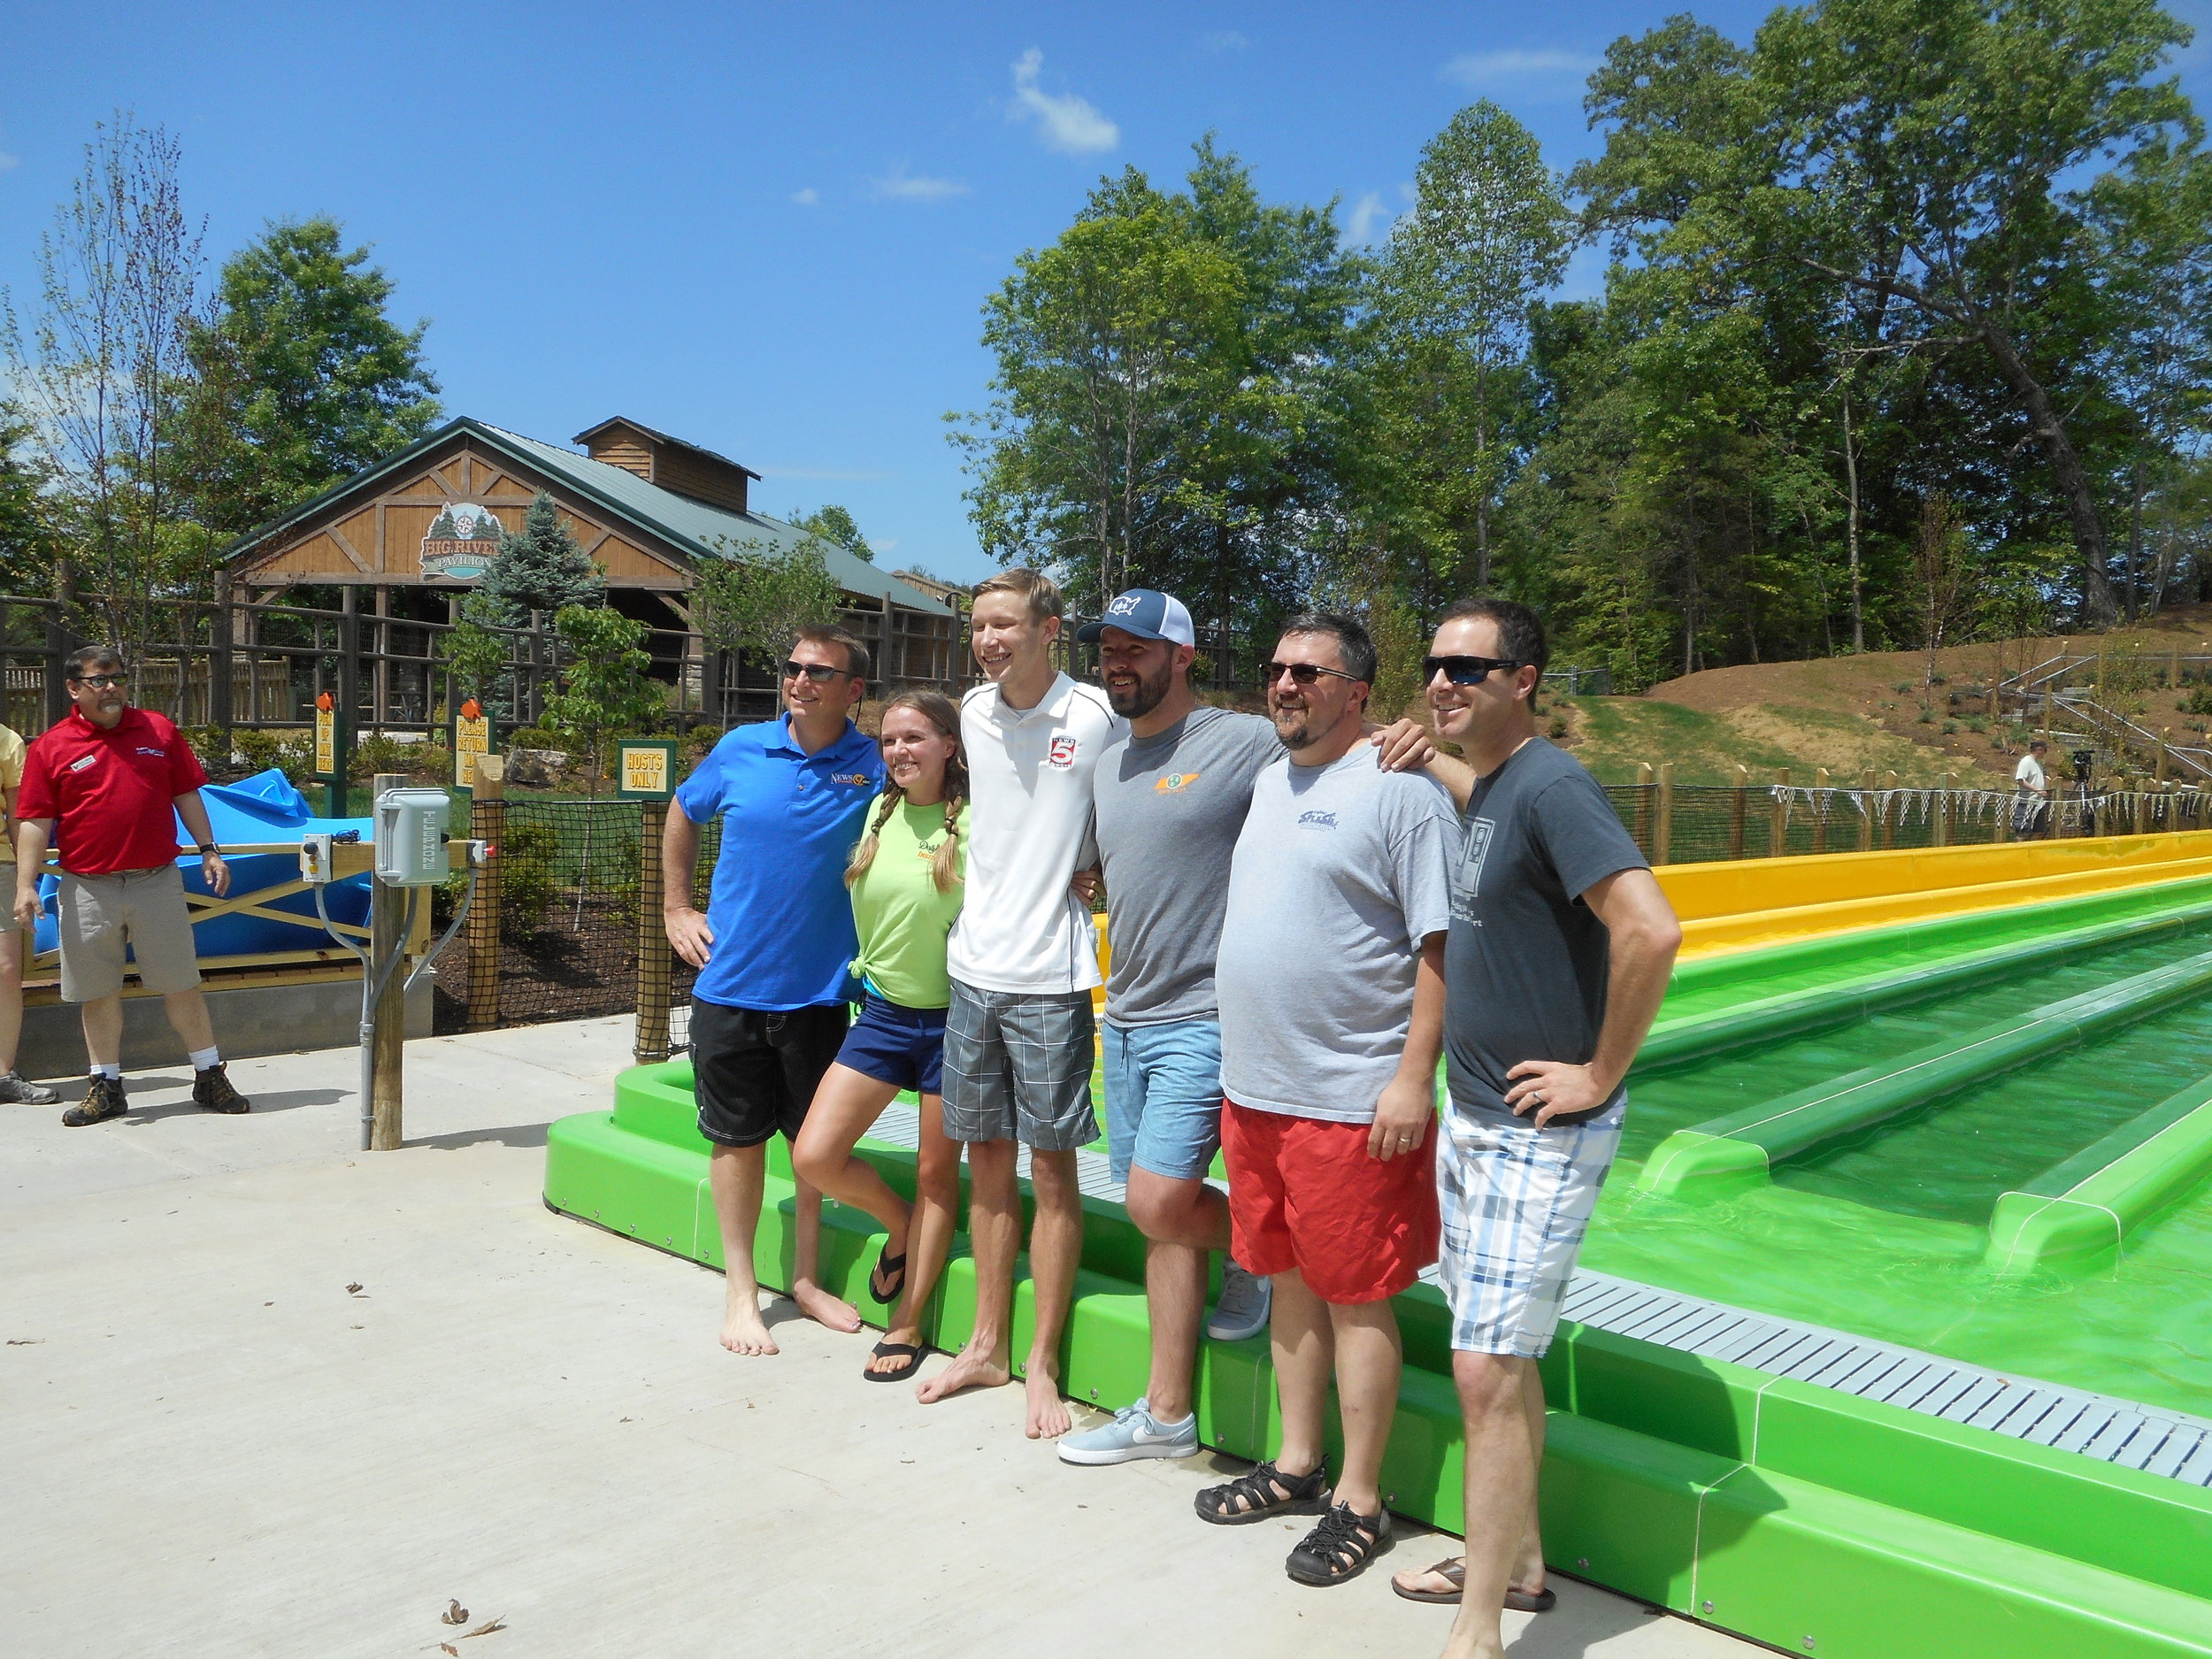 Your @knoxdaytripper (2nd from the right) with other members of local media at a special event back in May at Tailspin Racer at Splash Country.